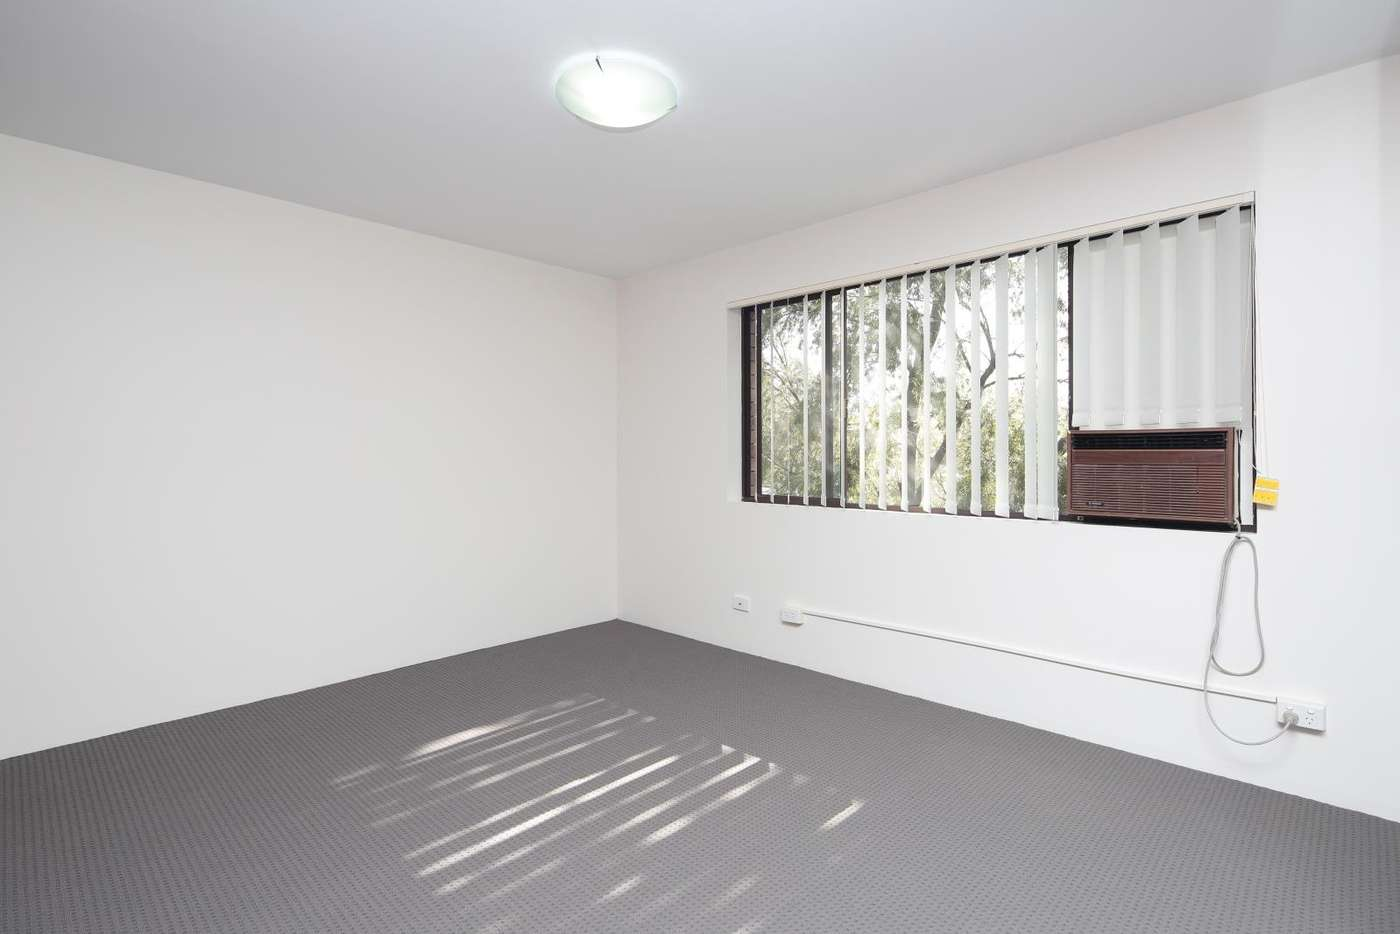 Sixth view of Homely unit listing, 1/32 Hetherington Street, Herston QLD 4006